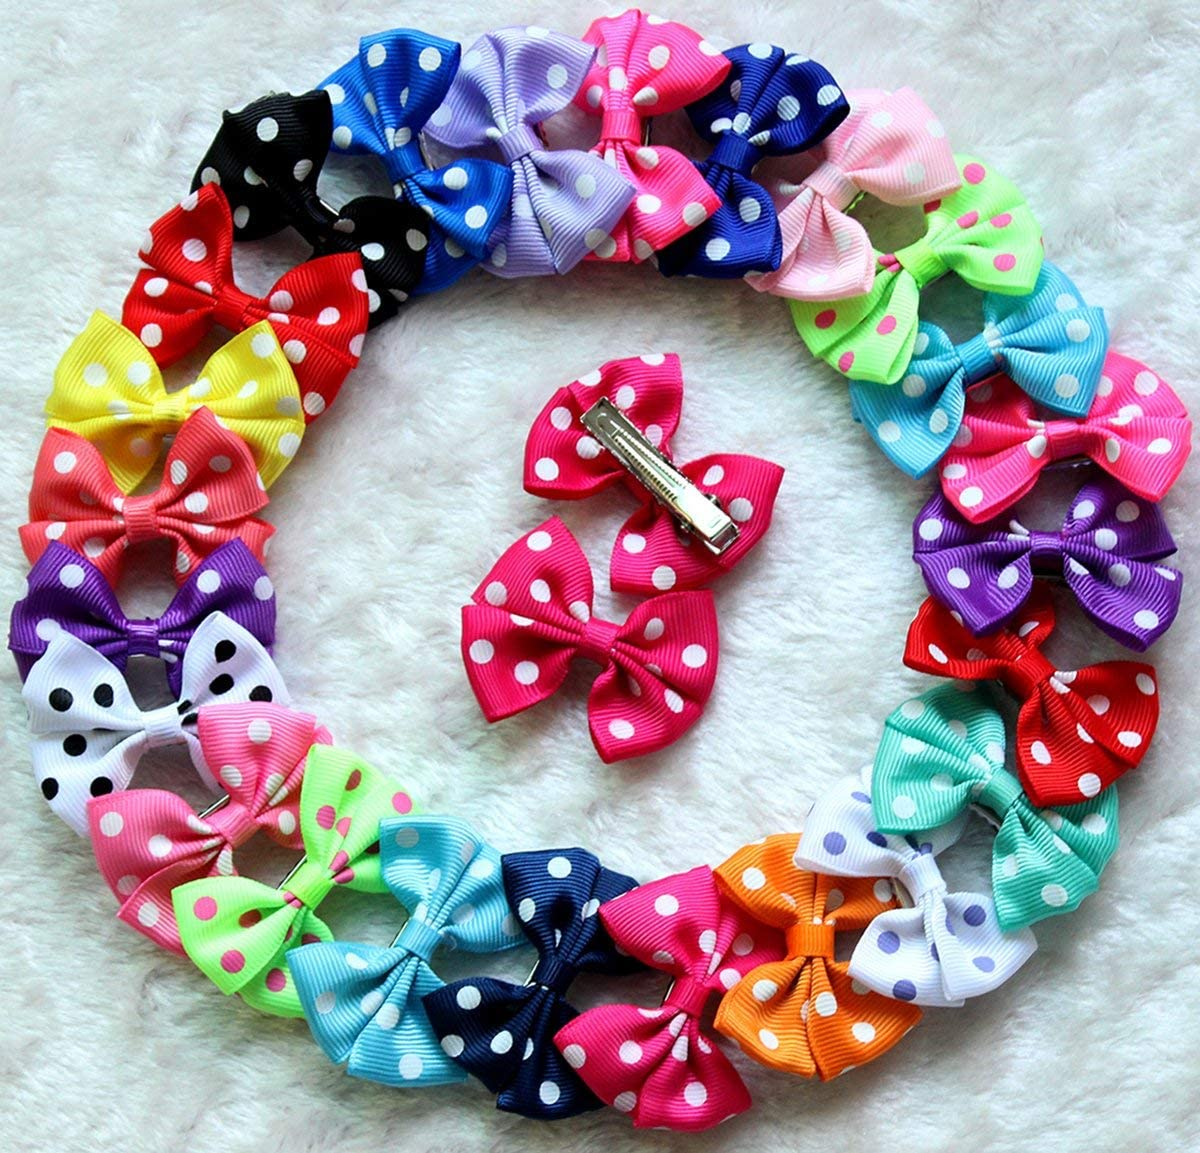 yagopet 30pcs 15pairs Dog Hair Clips T 67% OFF of Regular store fixed price inches Bows 2 Bowknot